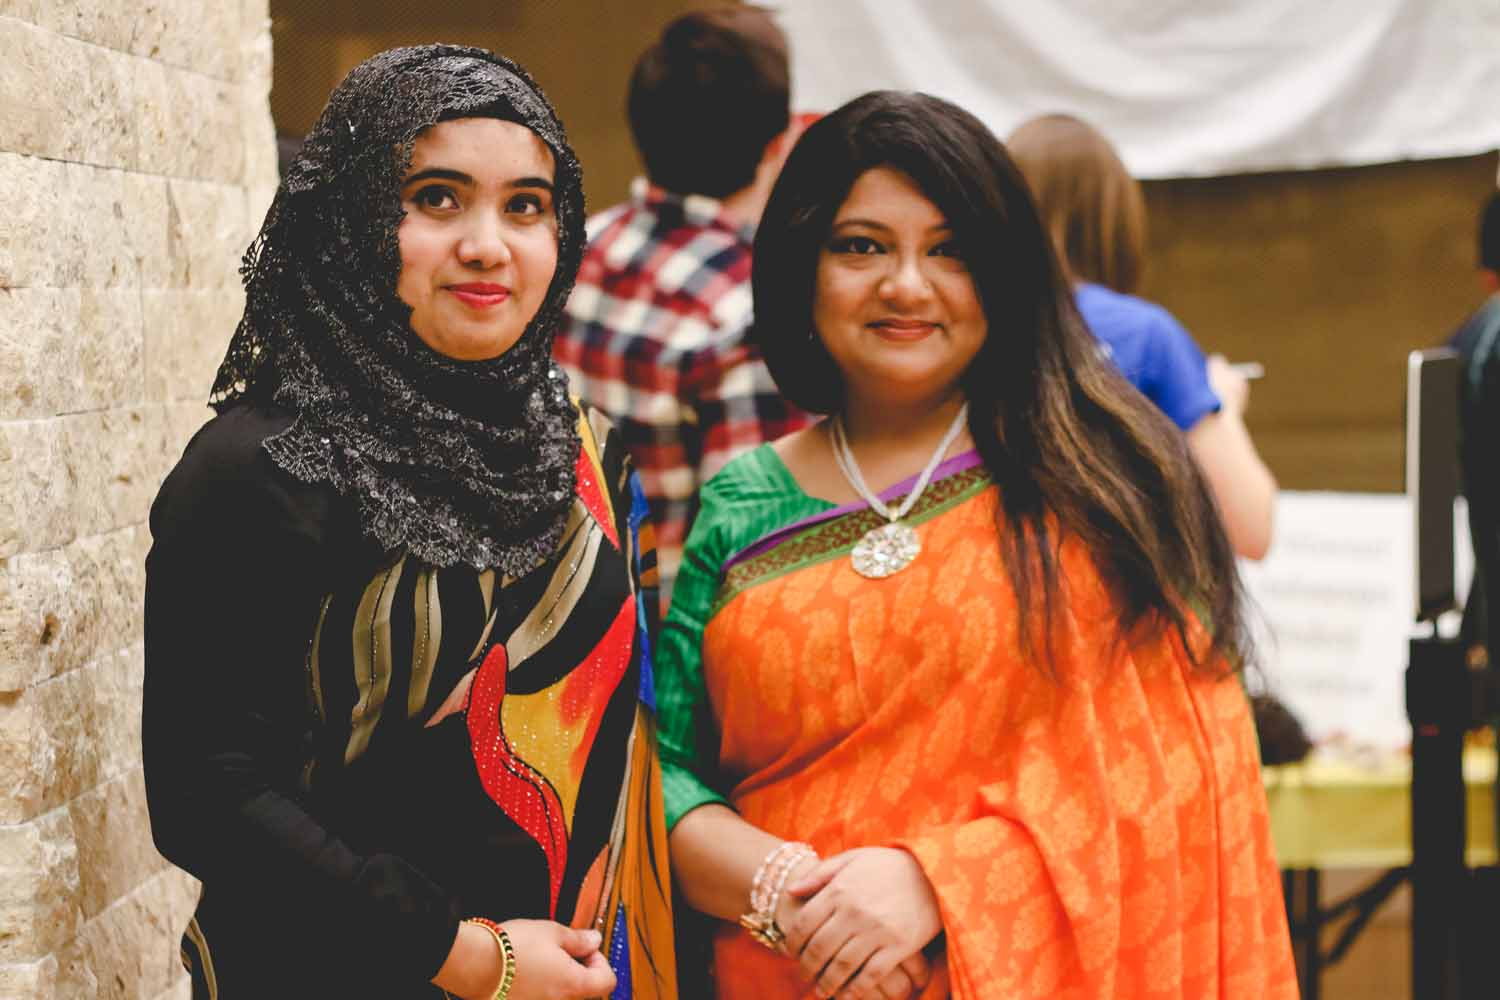 Sadia Aketer and Mouly Shahreen pose for a photo at the International Welcome Party. Photo by Hanna Yowell.